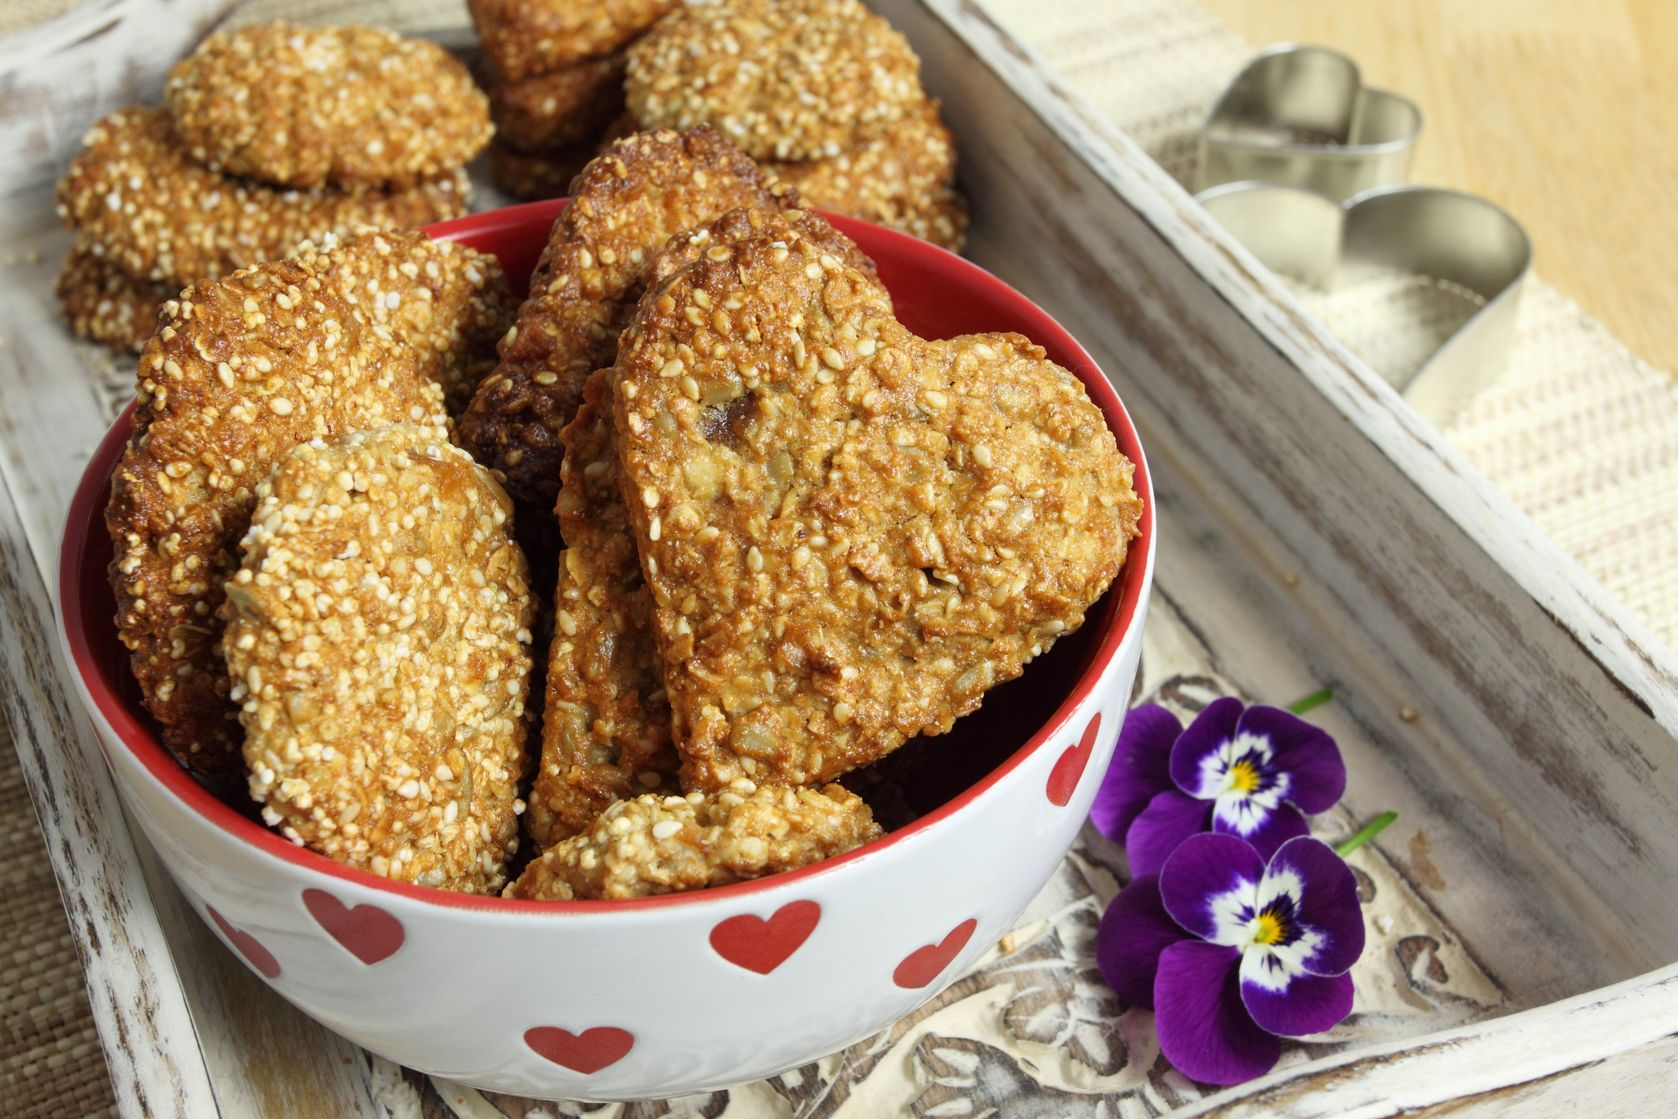 Oat biscuits with the addition of sesame, sunflower and amaranth.